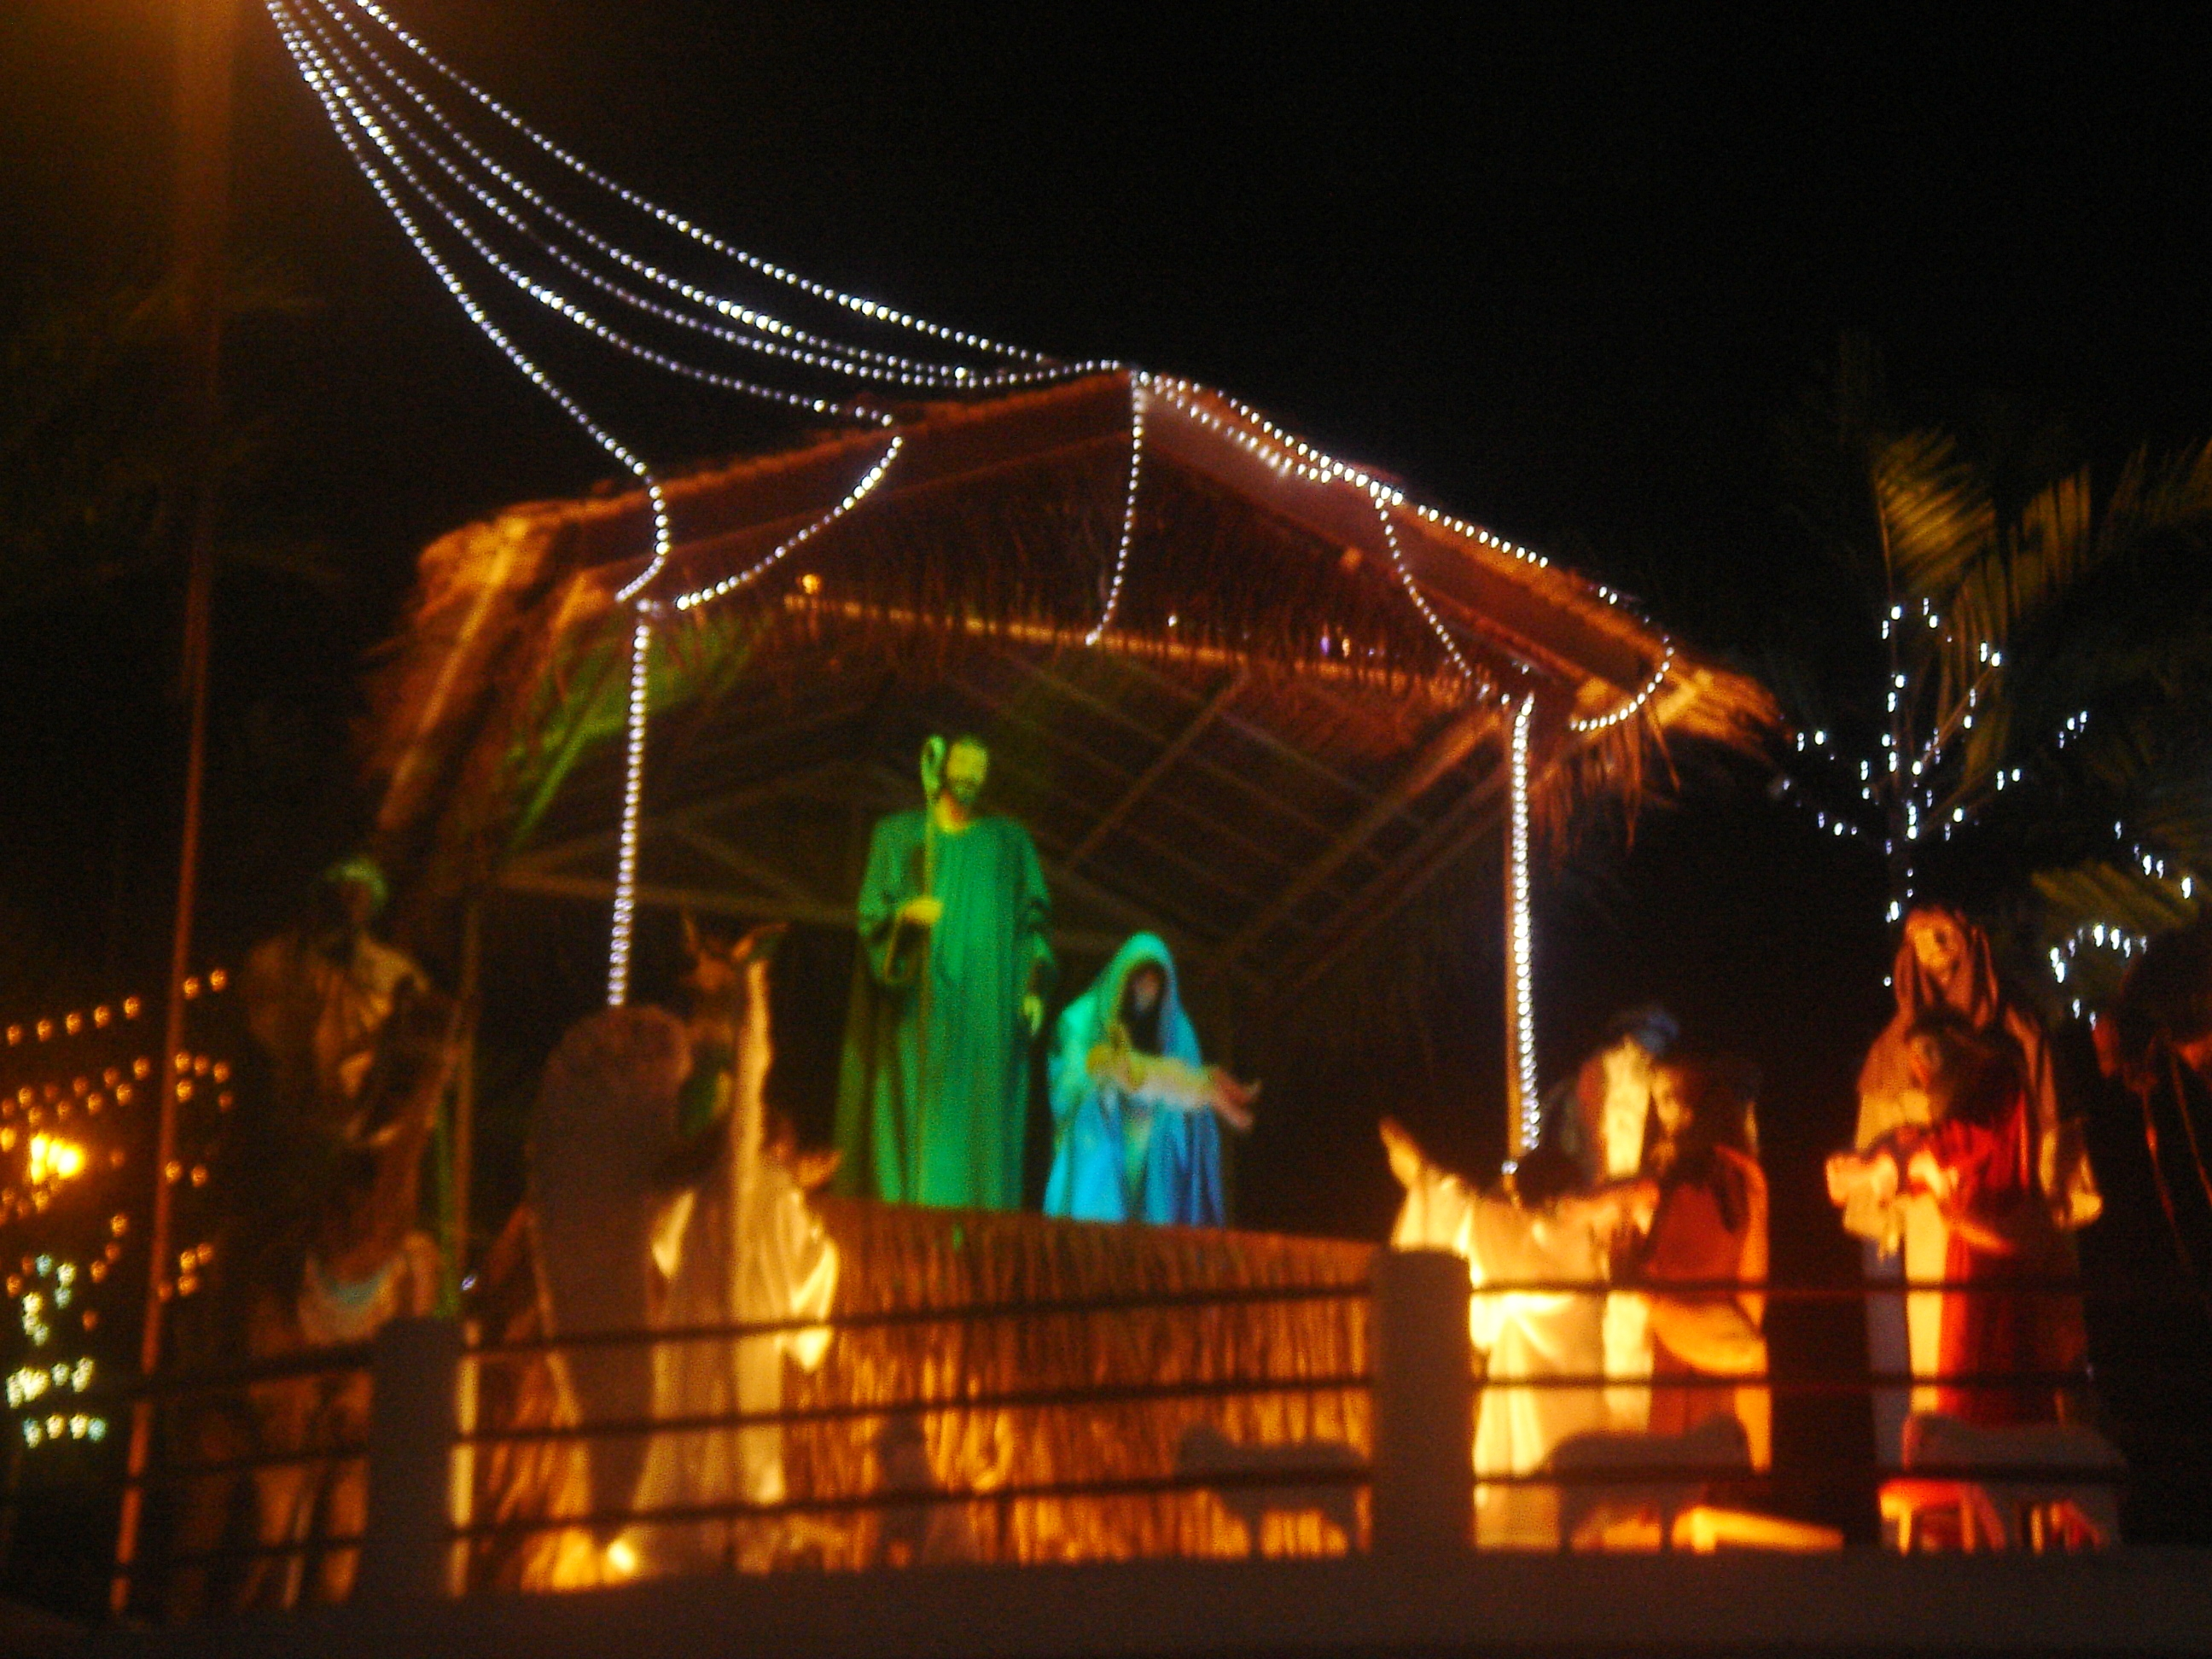 sacred heart parish christmas display